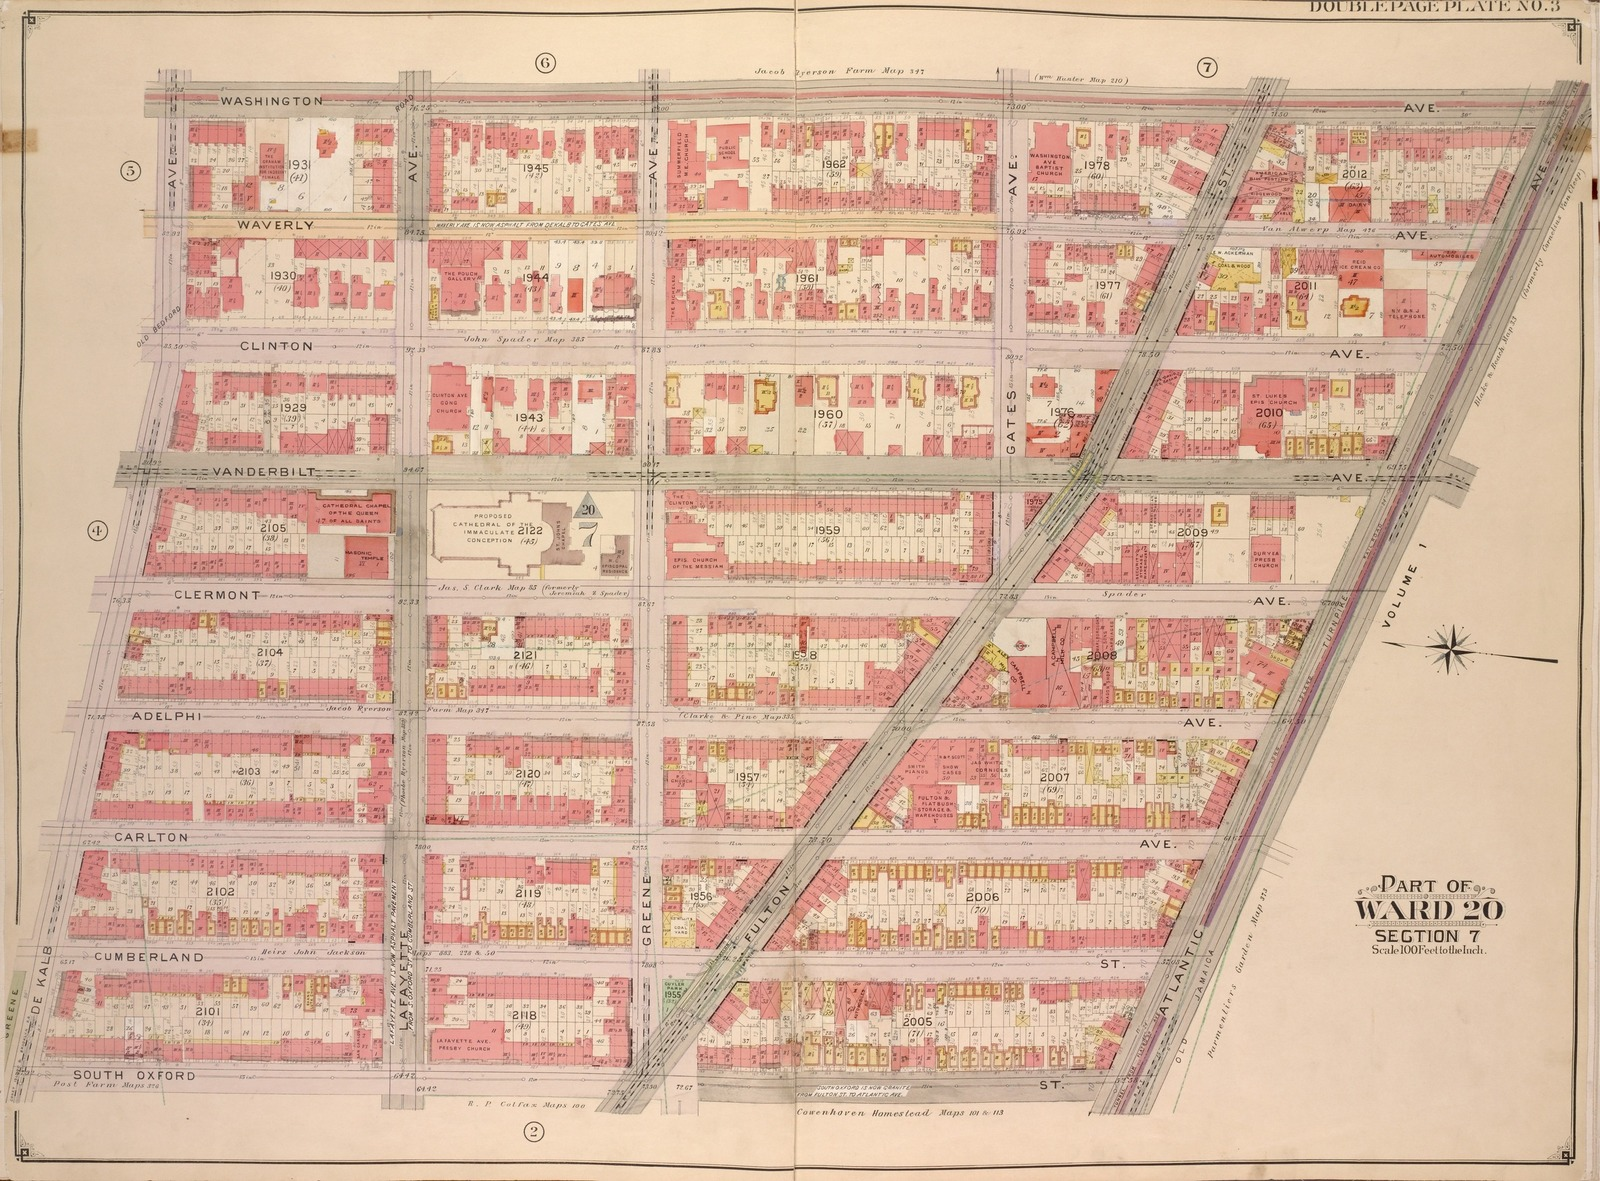 Brooklyn, Vol. 2, Double Page Plate No. 3; Part of Ward 20, Section 7; [Map bounded by Washington Ave., Atlantic Ave.; Including  South Oxford St., De Kalb Ave.]